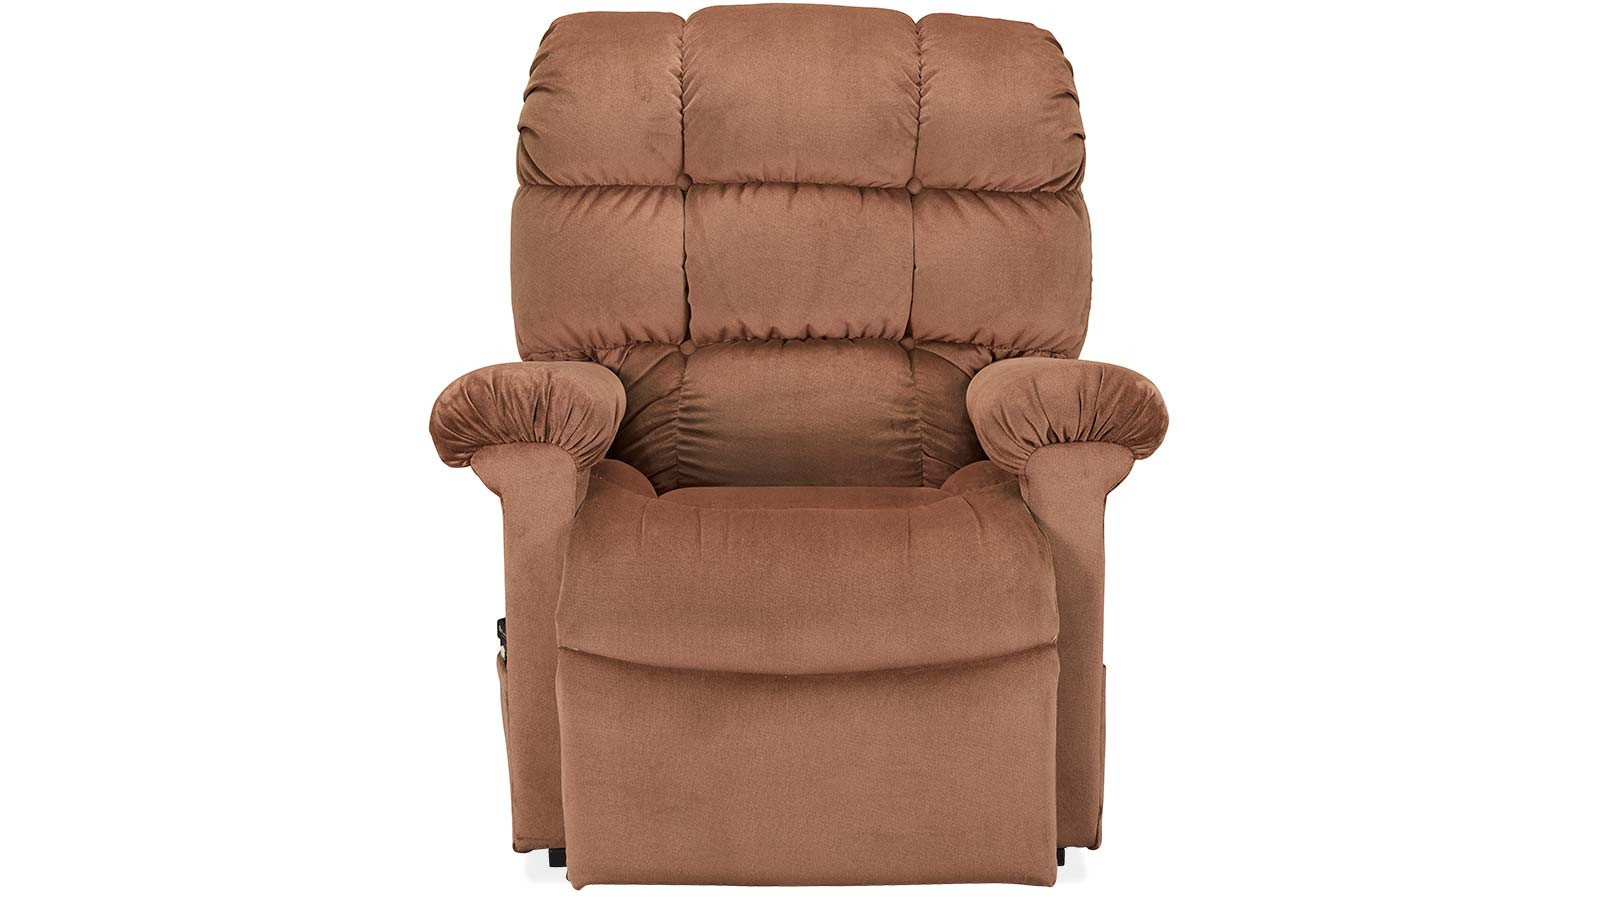 brown Power Lift Recliners for home furniture ideas